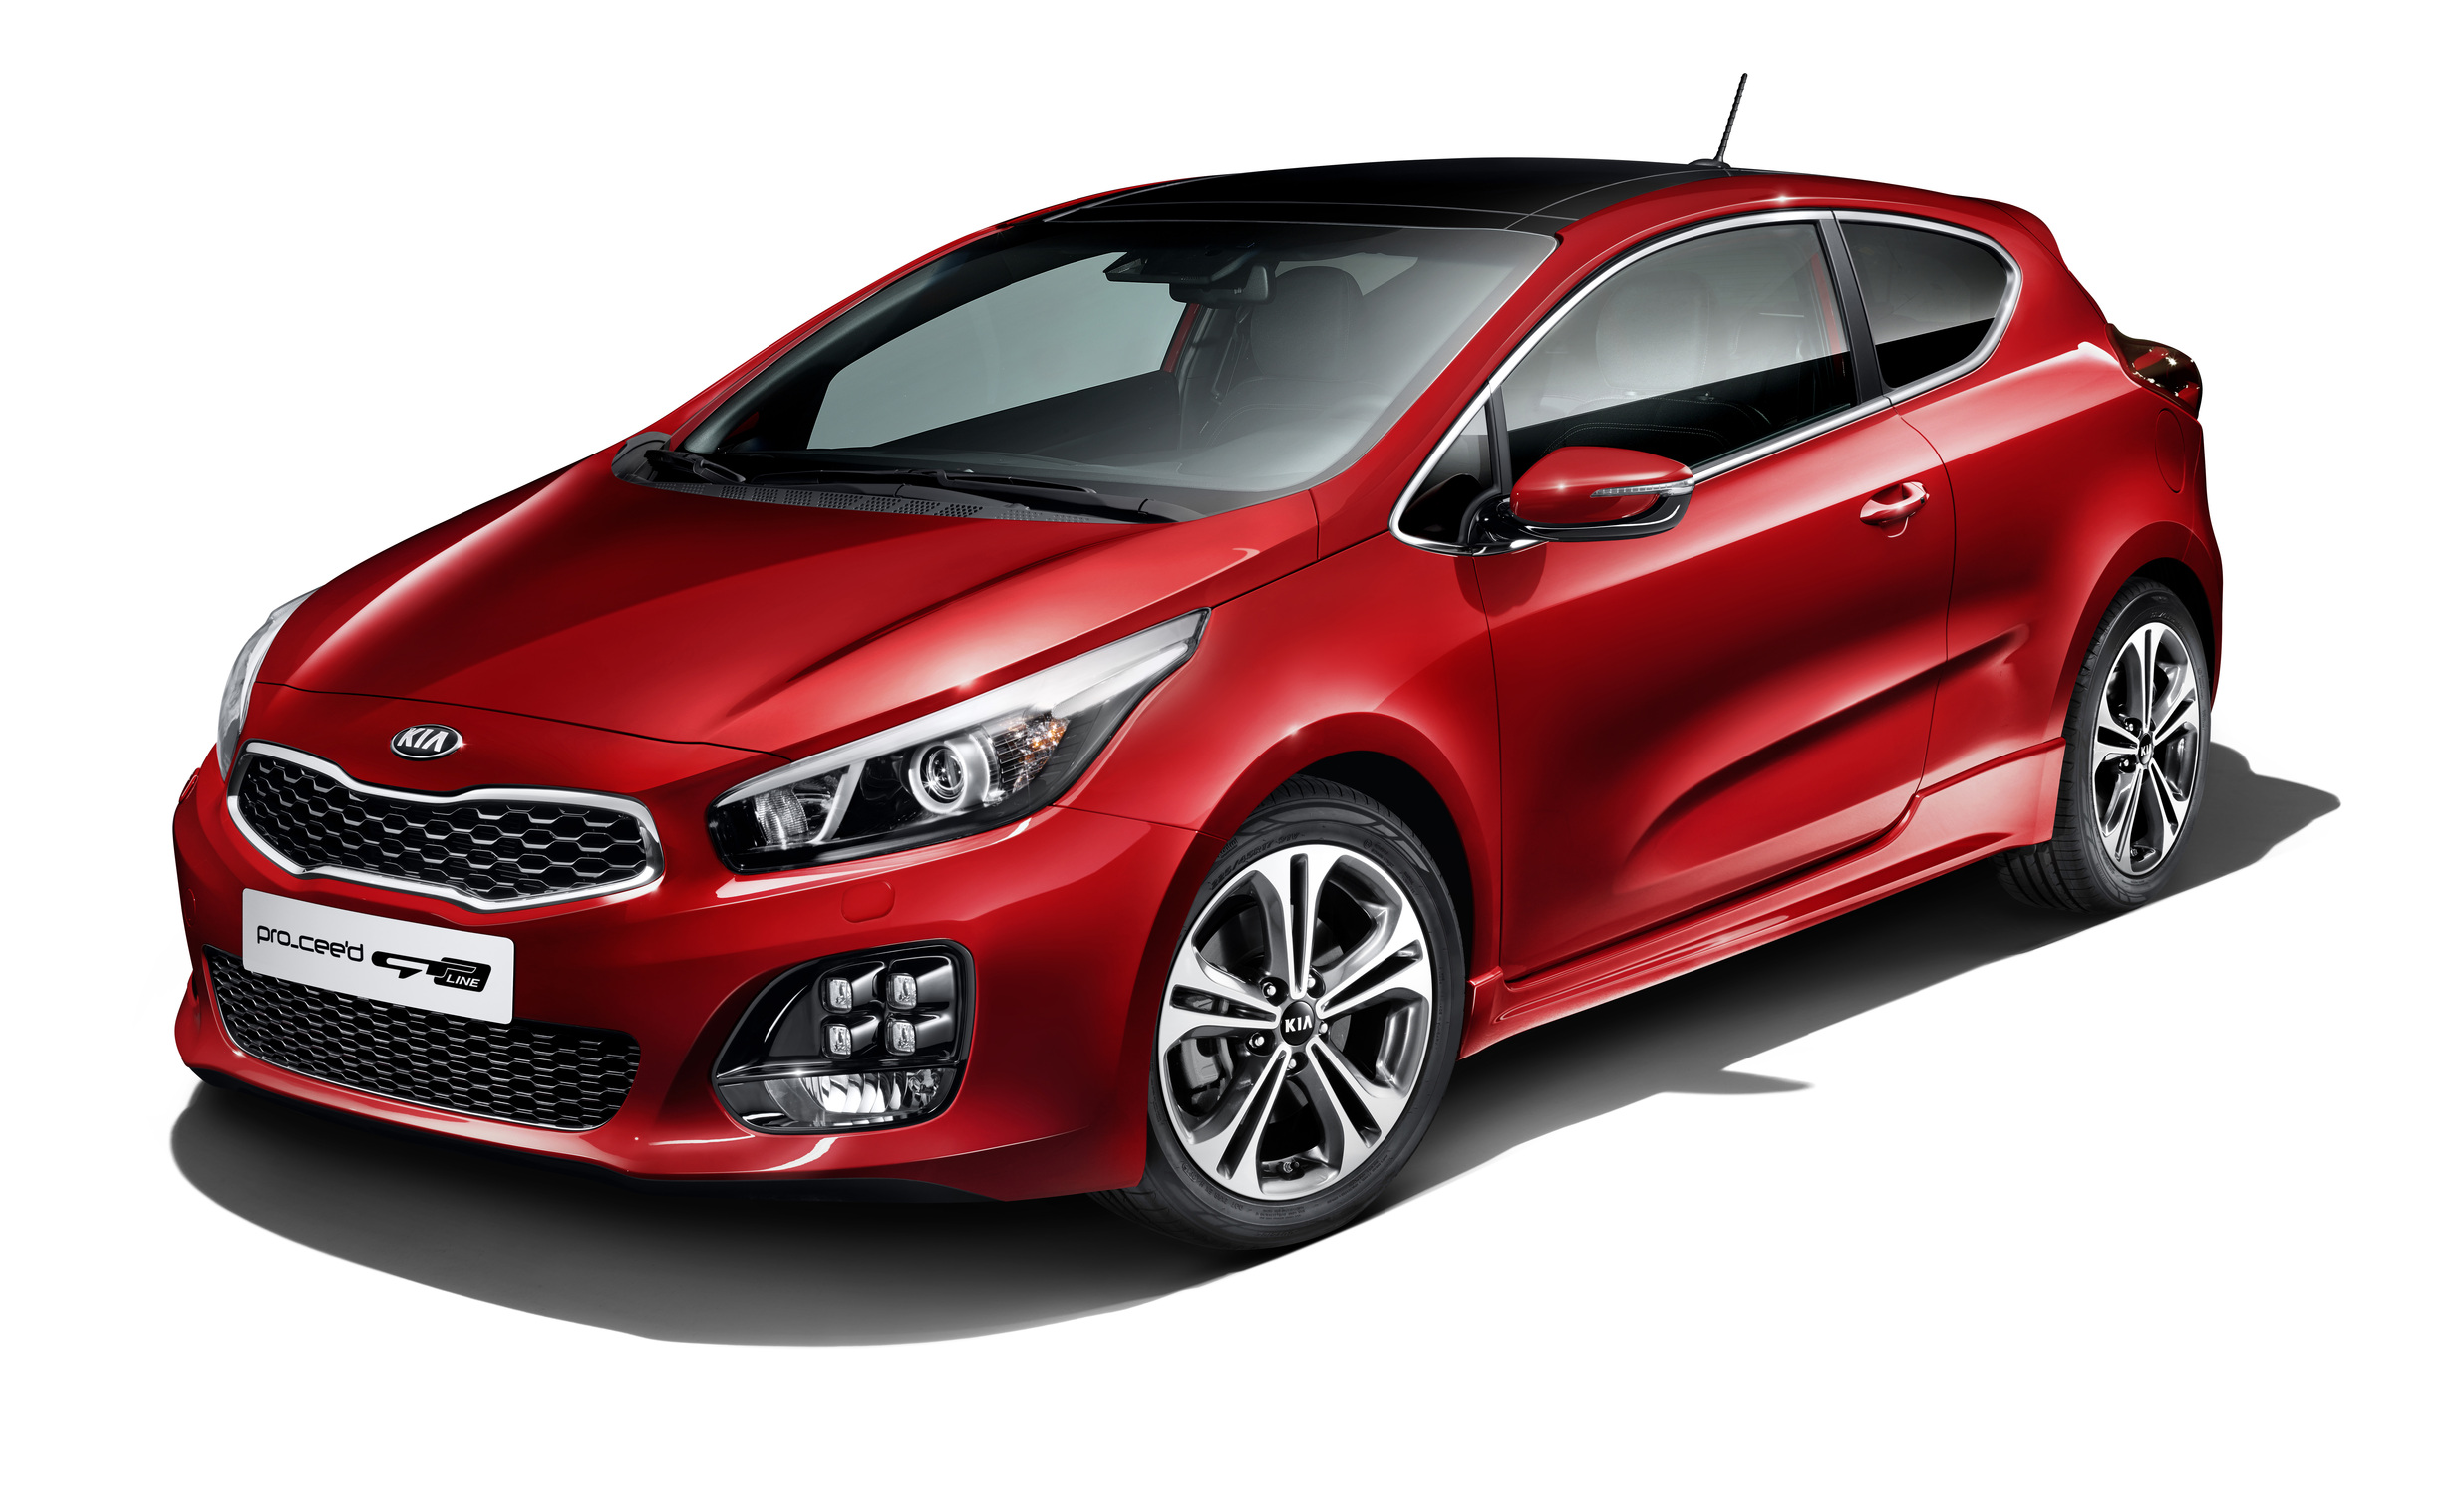 kia_pro_ceed_gt_line_my16_body_colors_front_track_red_(frd)__7465_41907